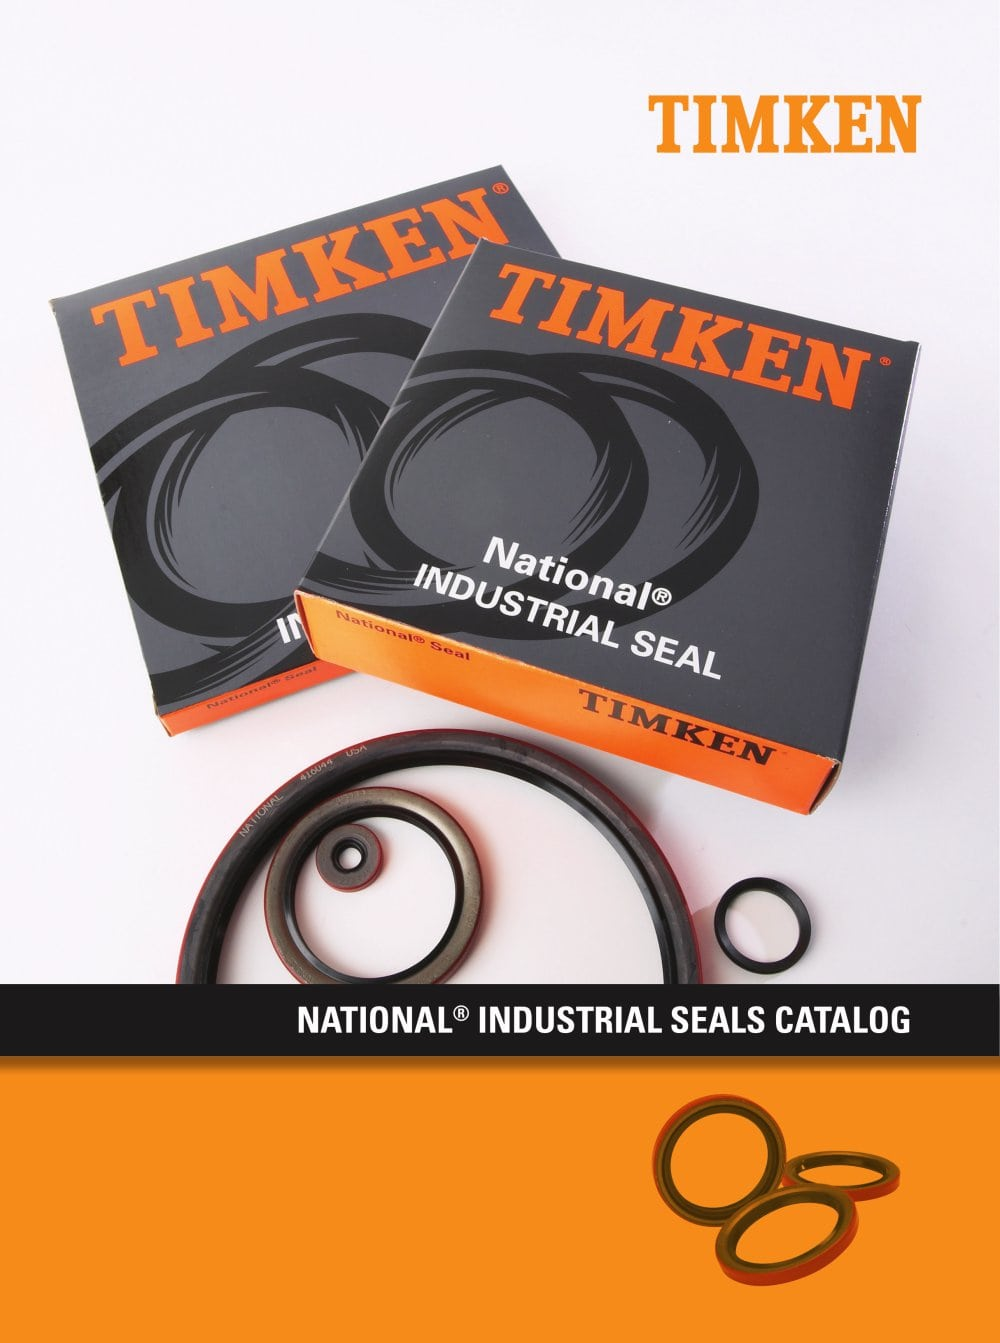 National industrial seals timken pdf catalogue technical national industrial seals 1 34 pages nvjuhfo Image collections